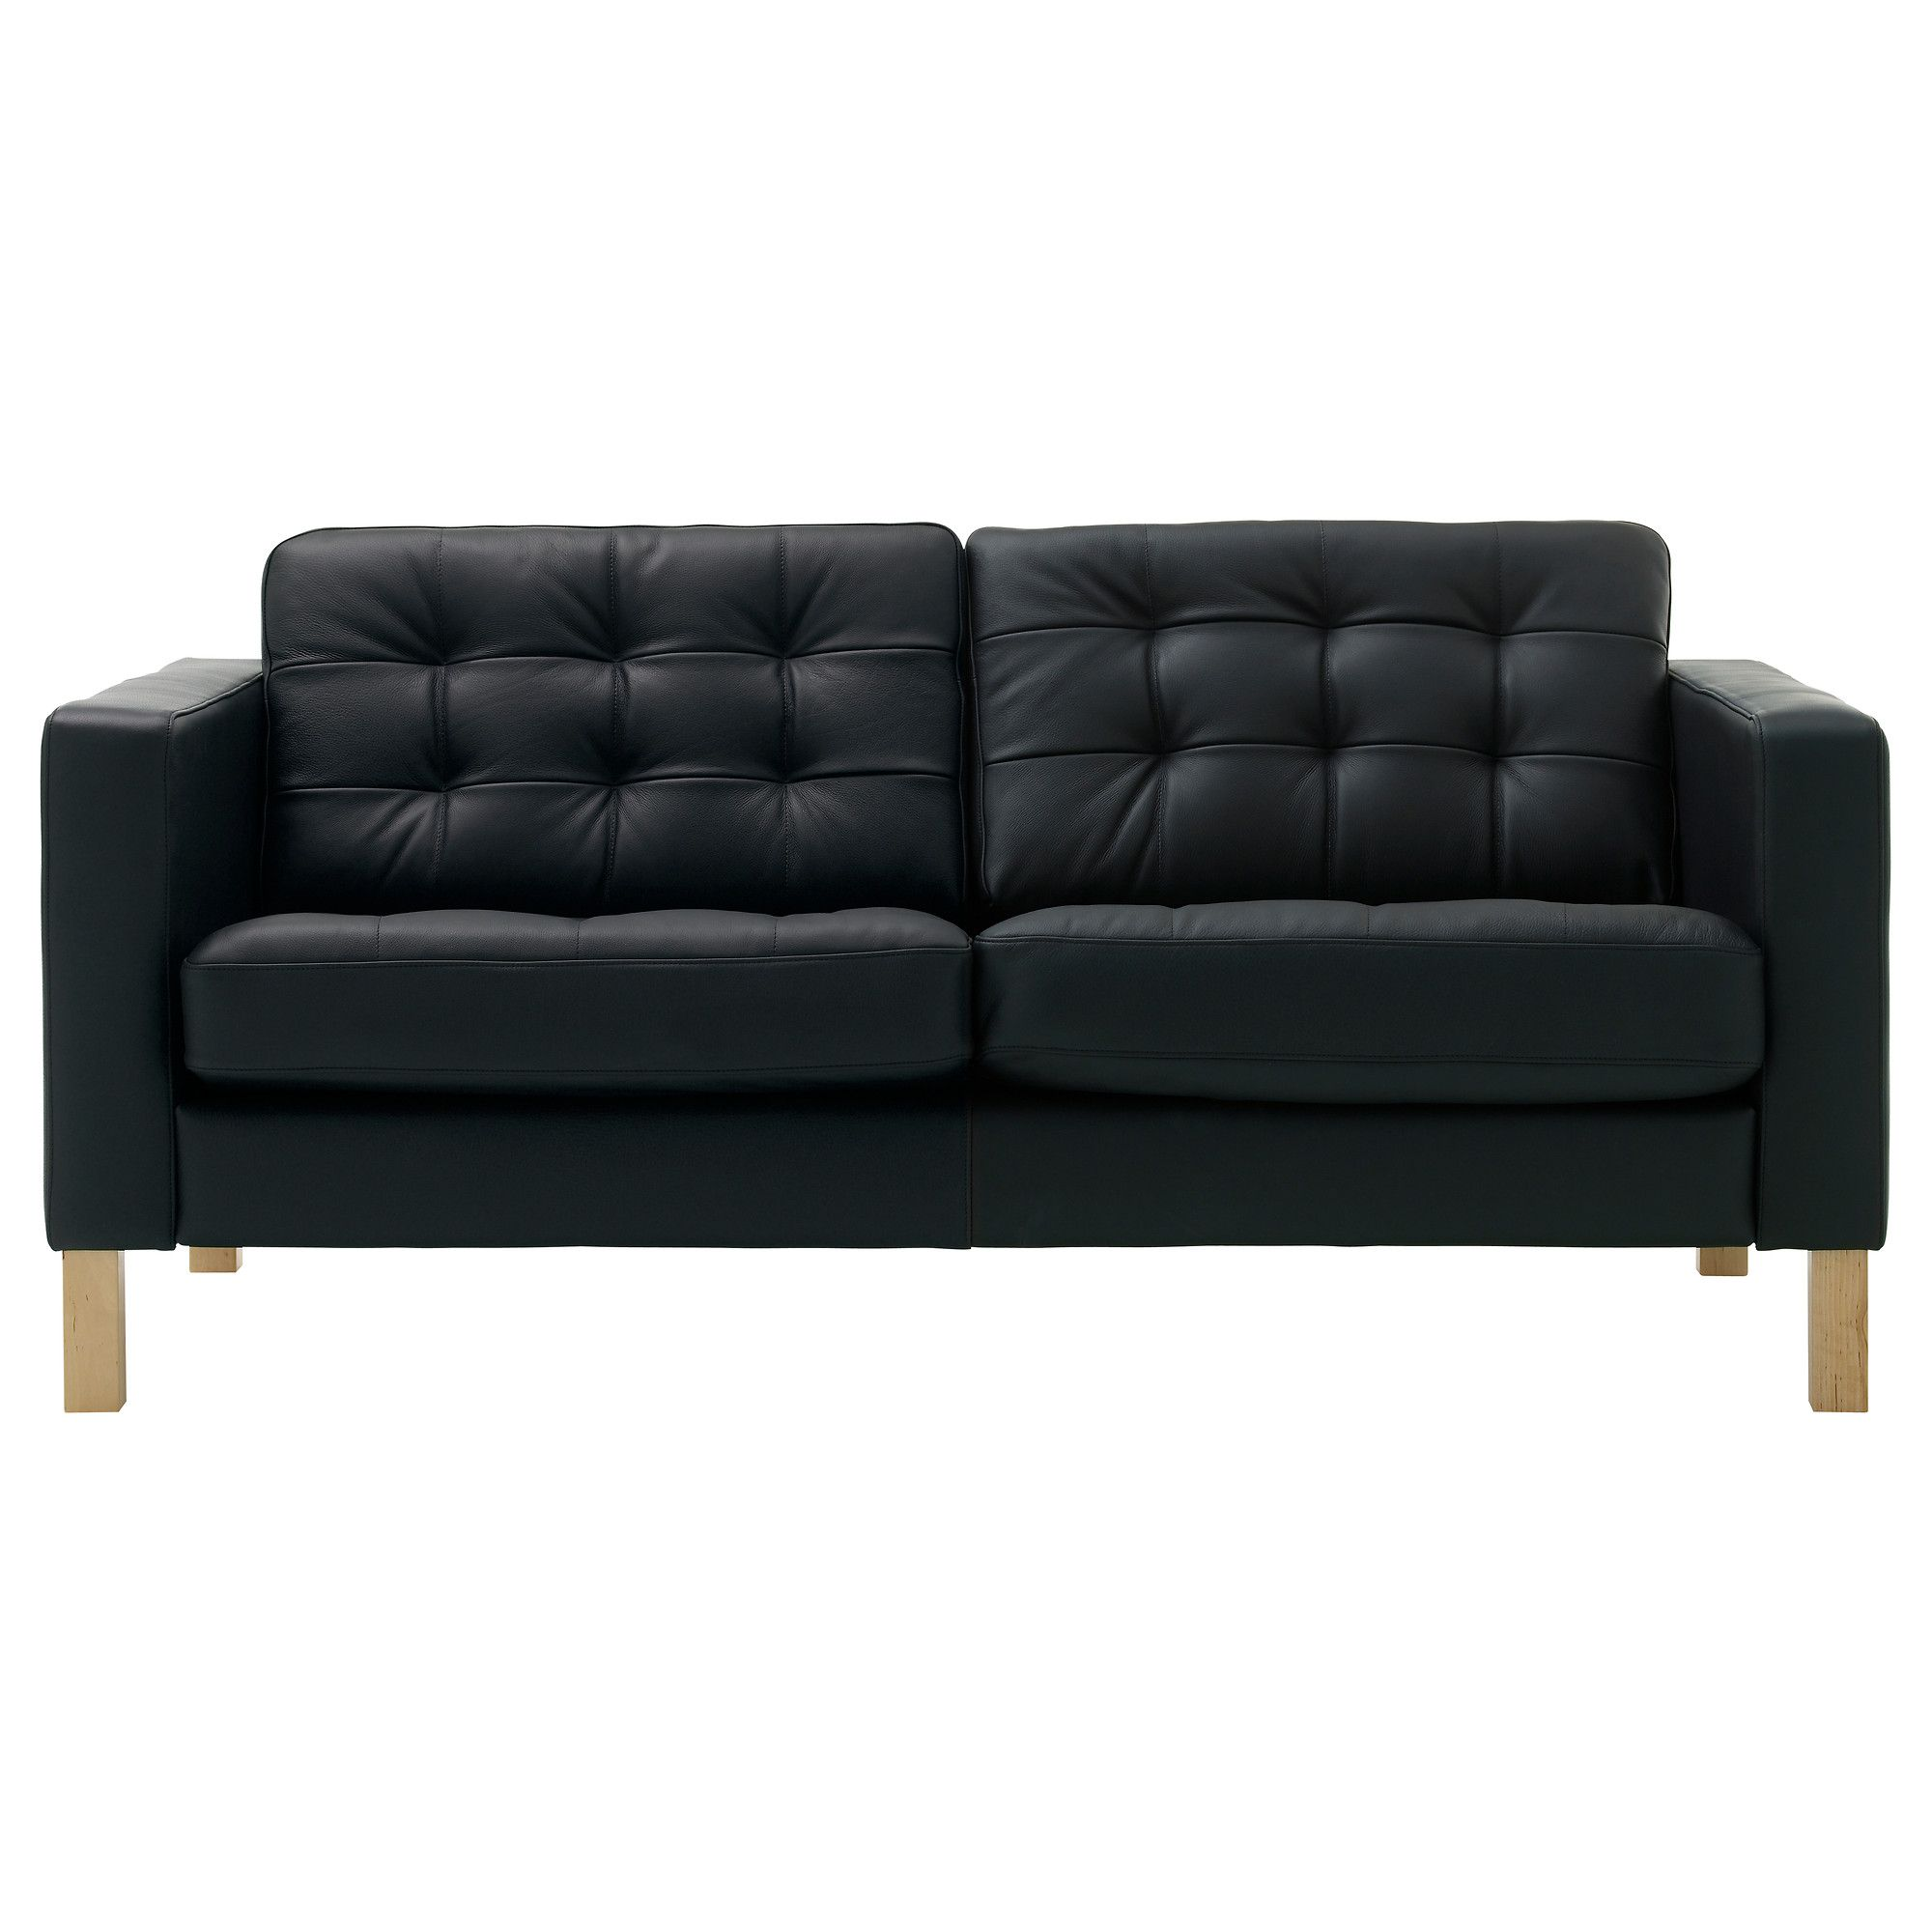 Loveseat Ikea Karlstad Loveseat Tufted Grann Black Ikea 879 Sofa Ikea